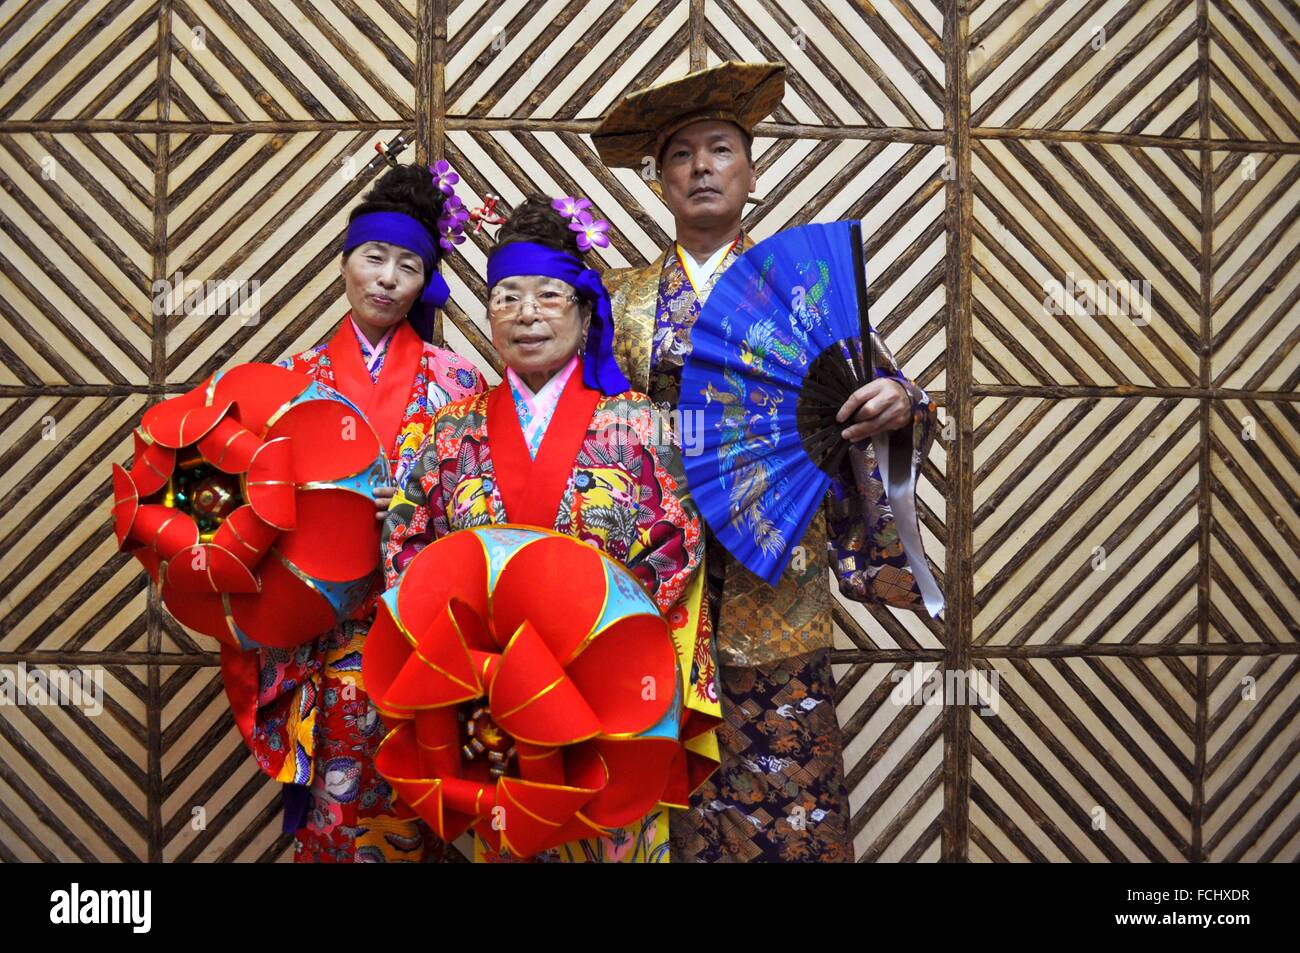 91fc22c8a50 Naha Okinawa Japan Traditional Ryukyan Stock Photos   Naha Okinawa ...